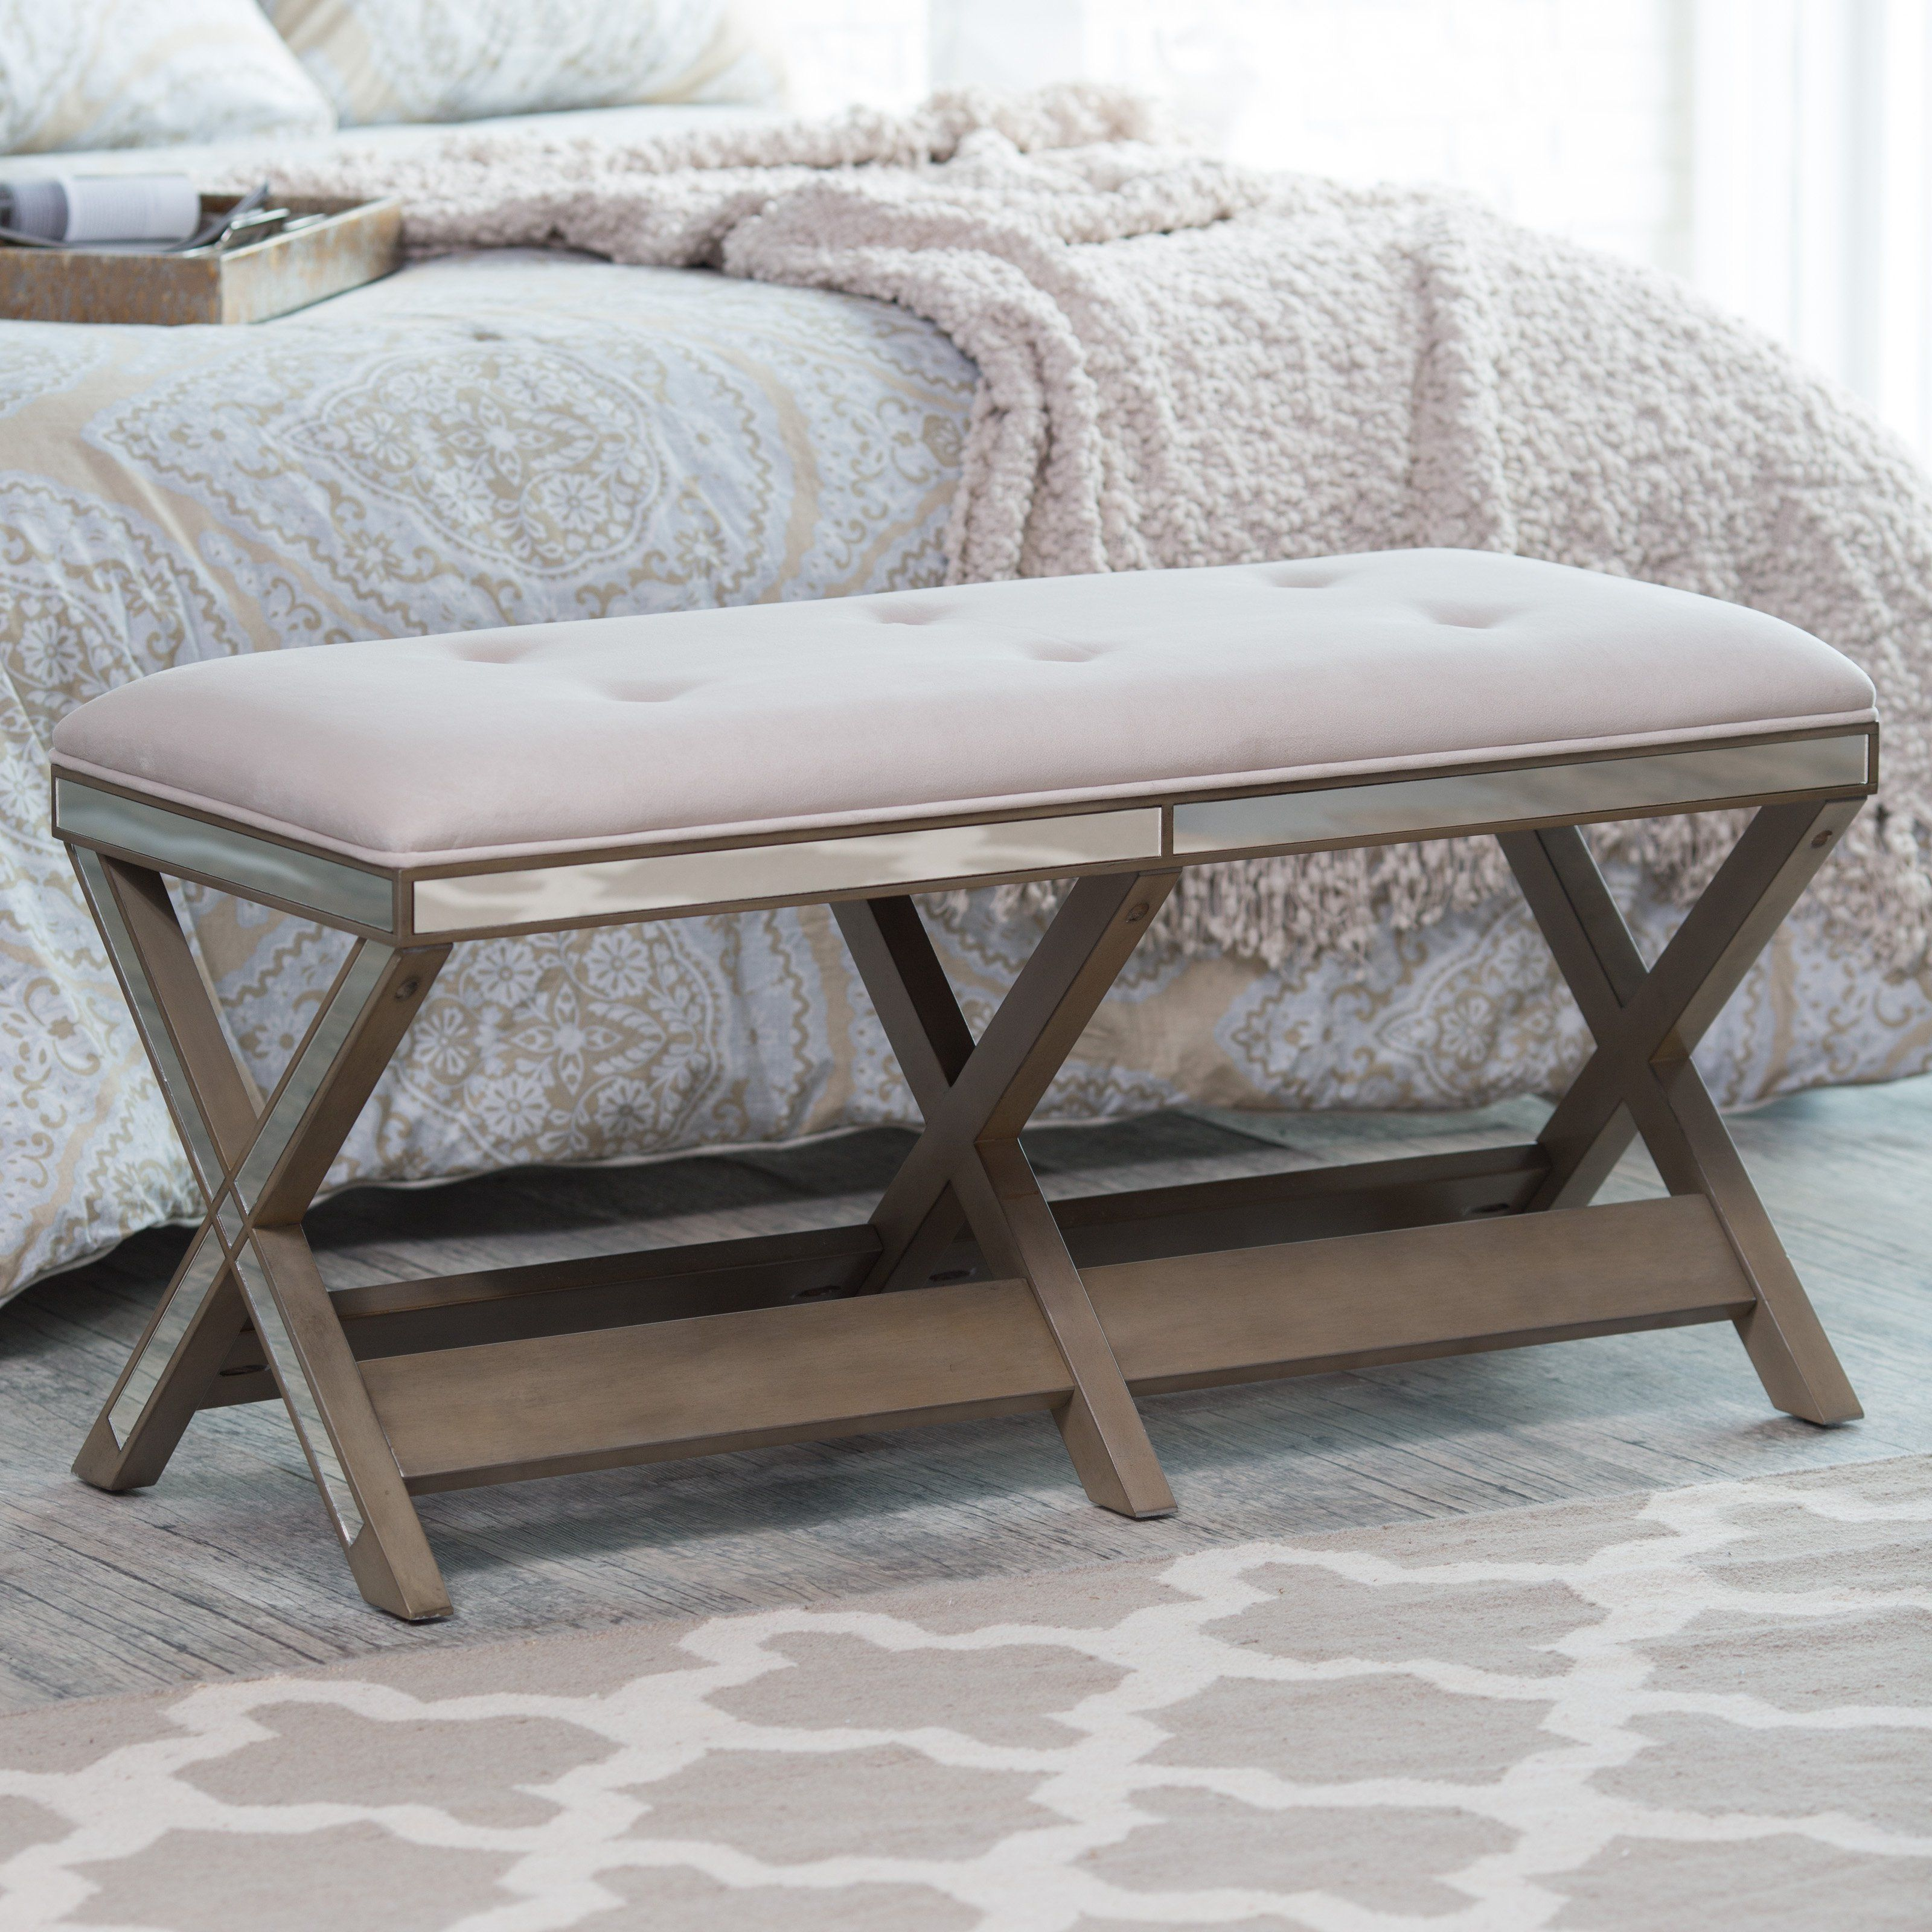 bedroom benches cheap amazing bedroomg bench for end bed and bedding